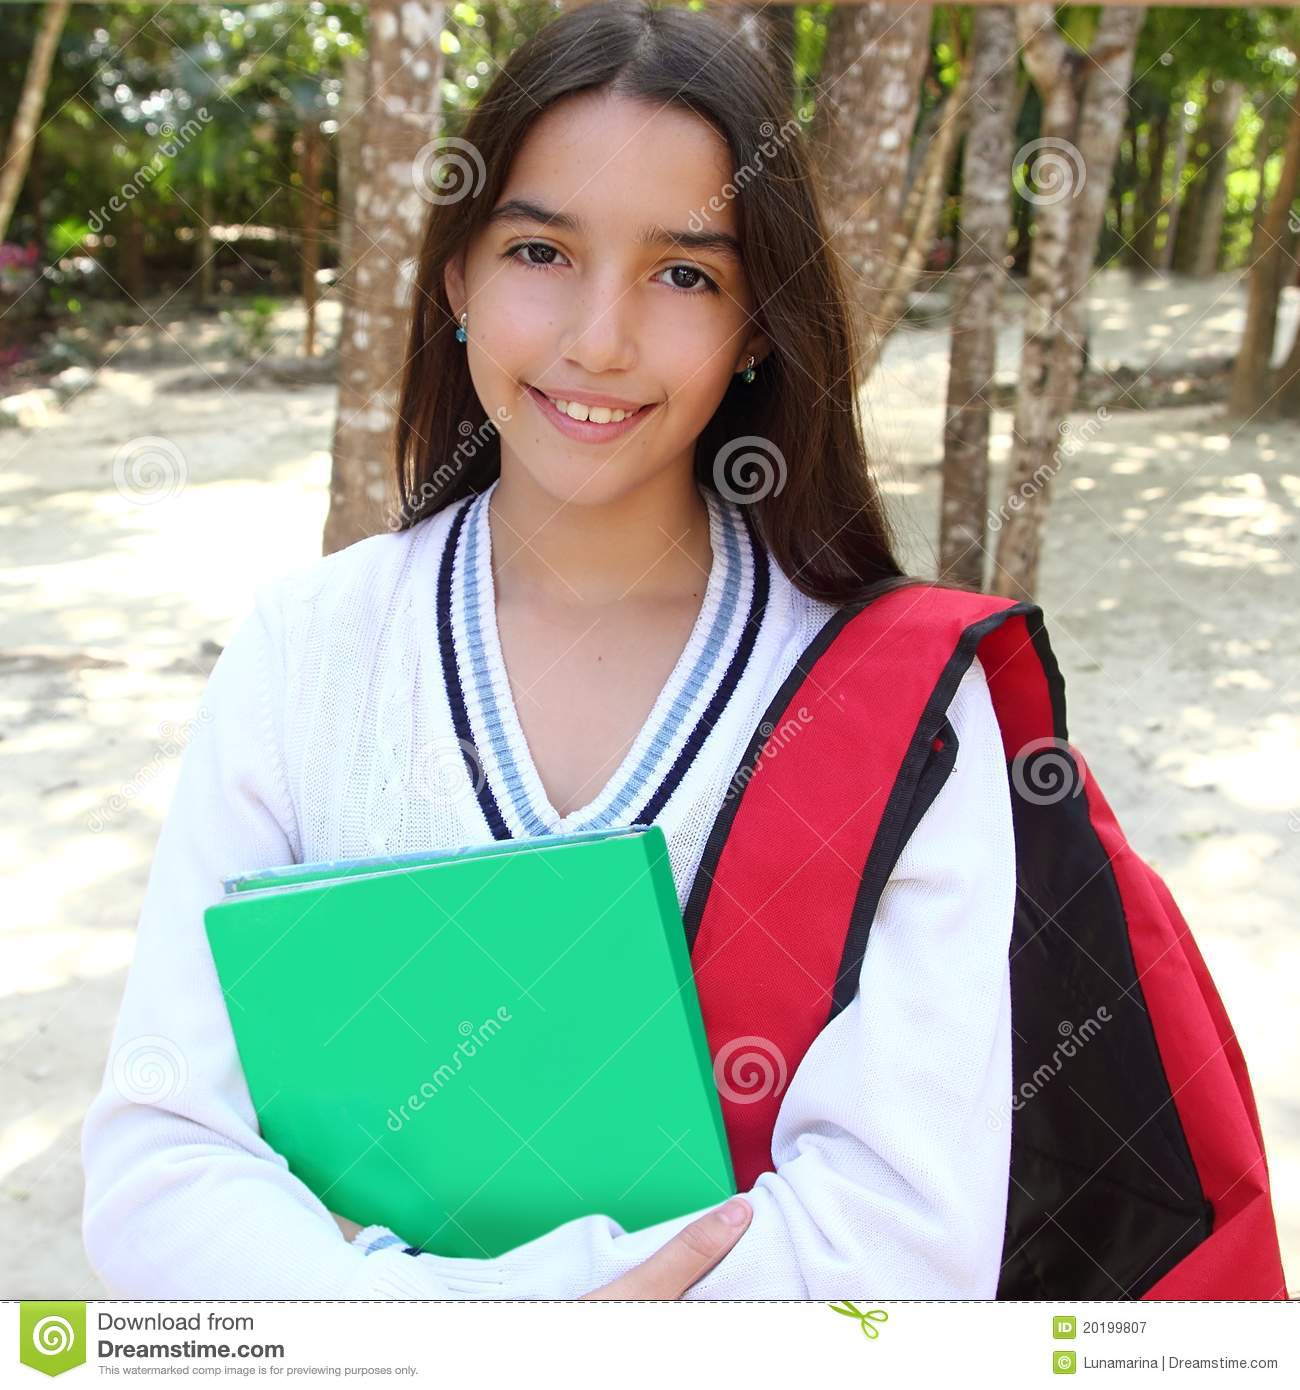 latin teenager girl backpack in mexico park royalty free free mexican clipart page borders free mexican clip art borders